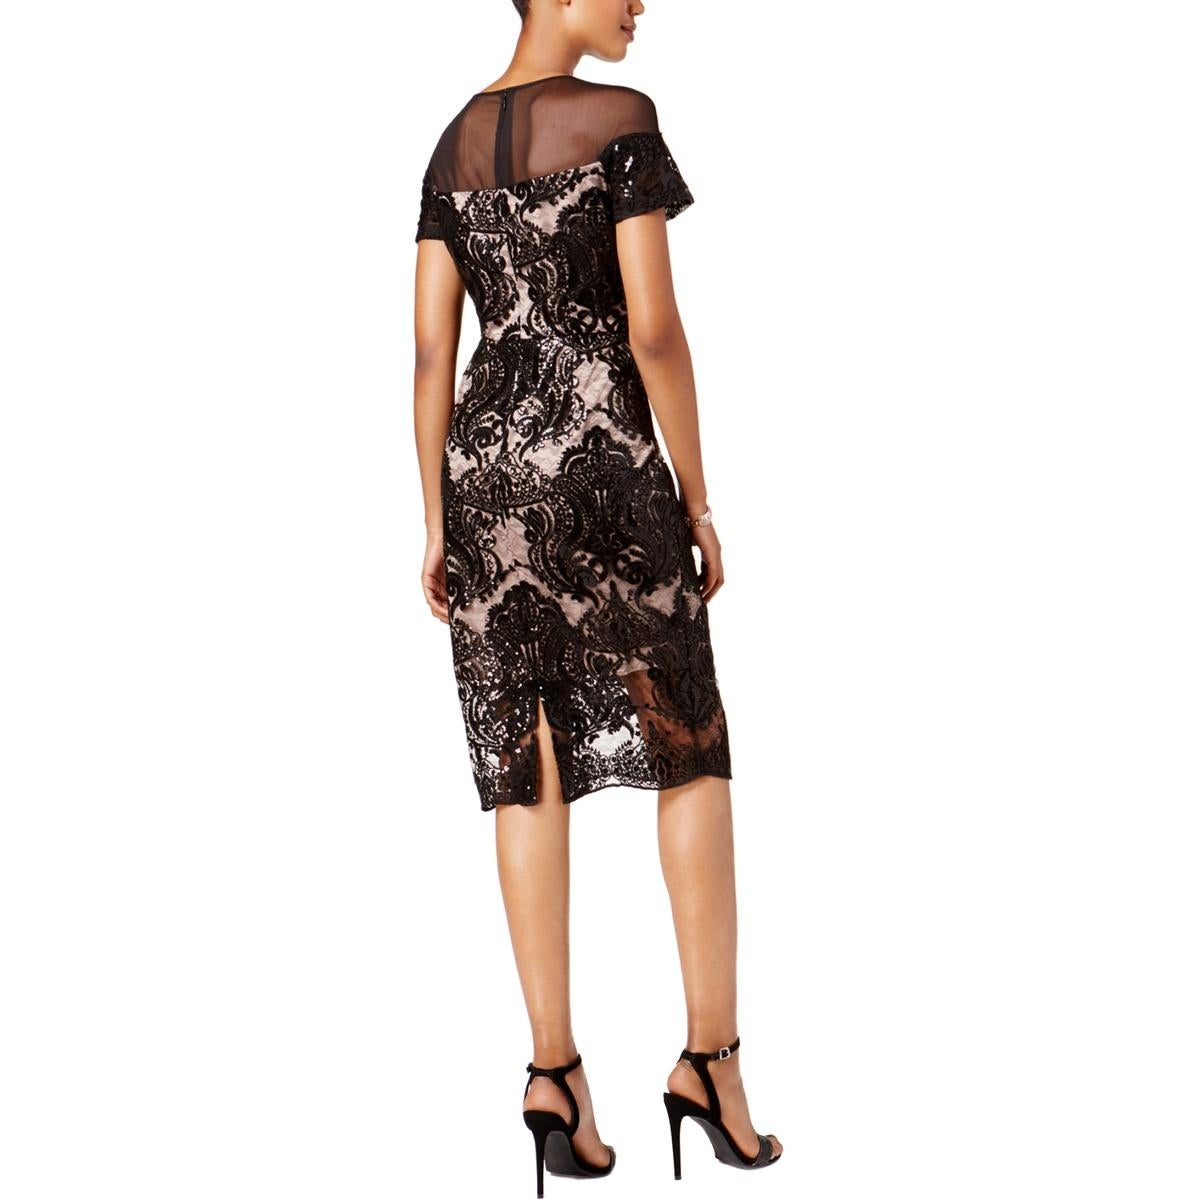 b33ebc731b Shop Jax Black Label Womens Cocktail Dress Sequined Cap Sleeves - Free  Shipping On Orders Over  45 - Overstock.com - 22408948